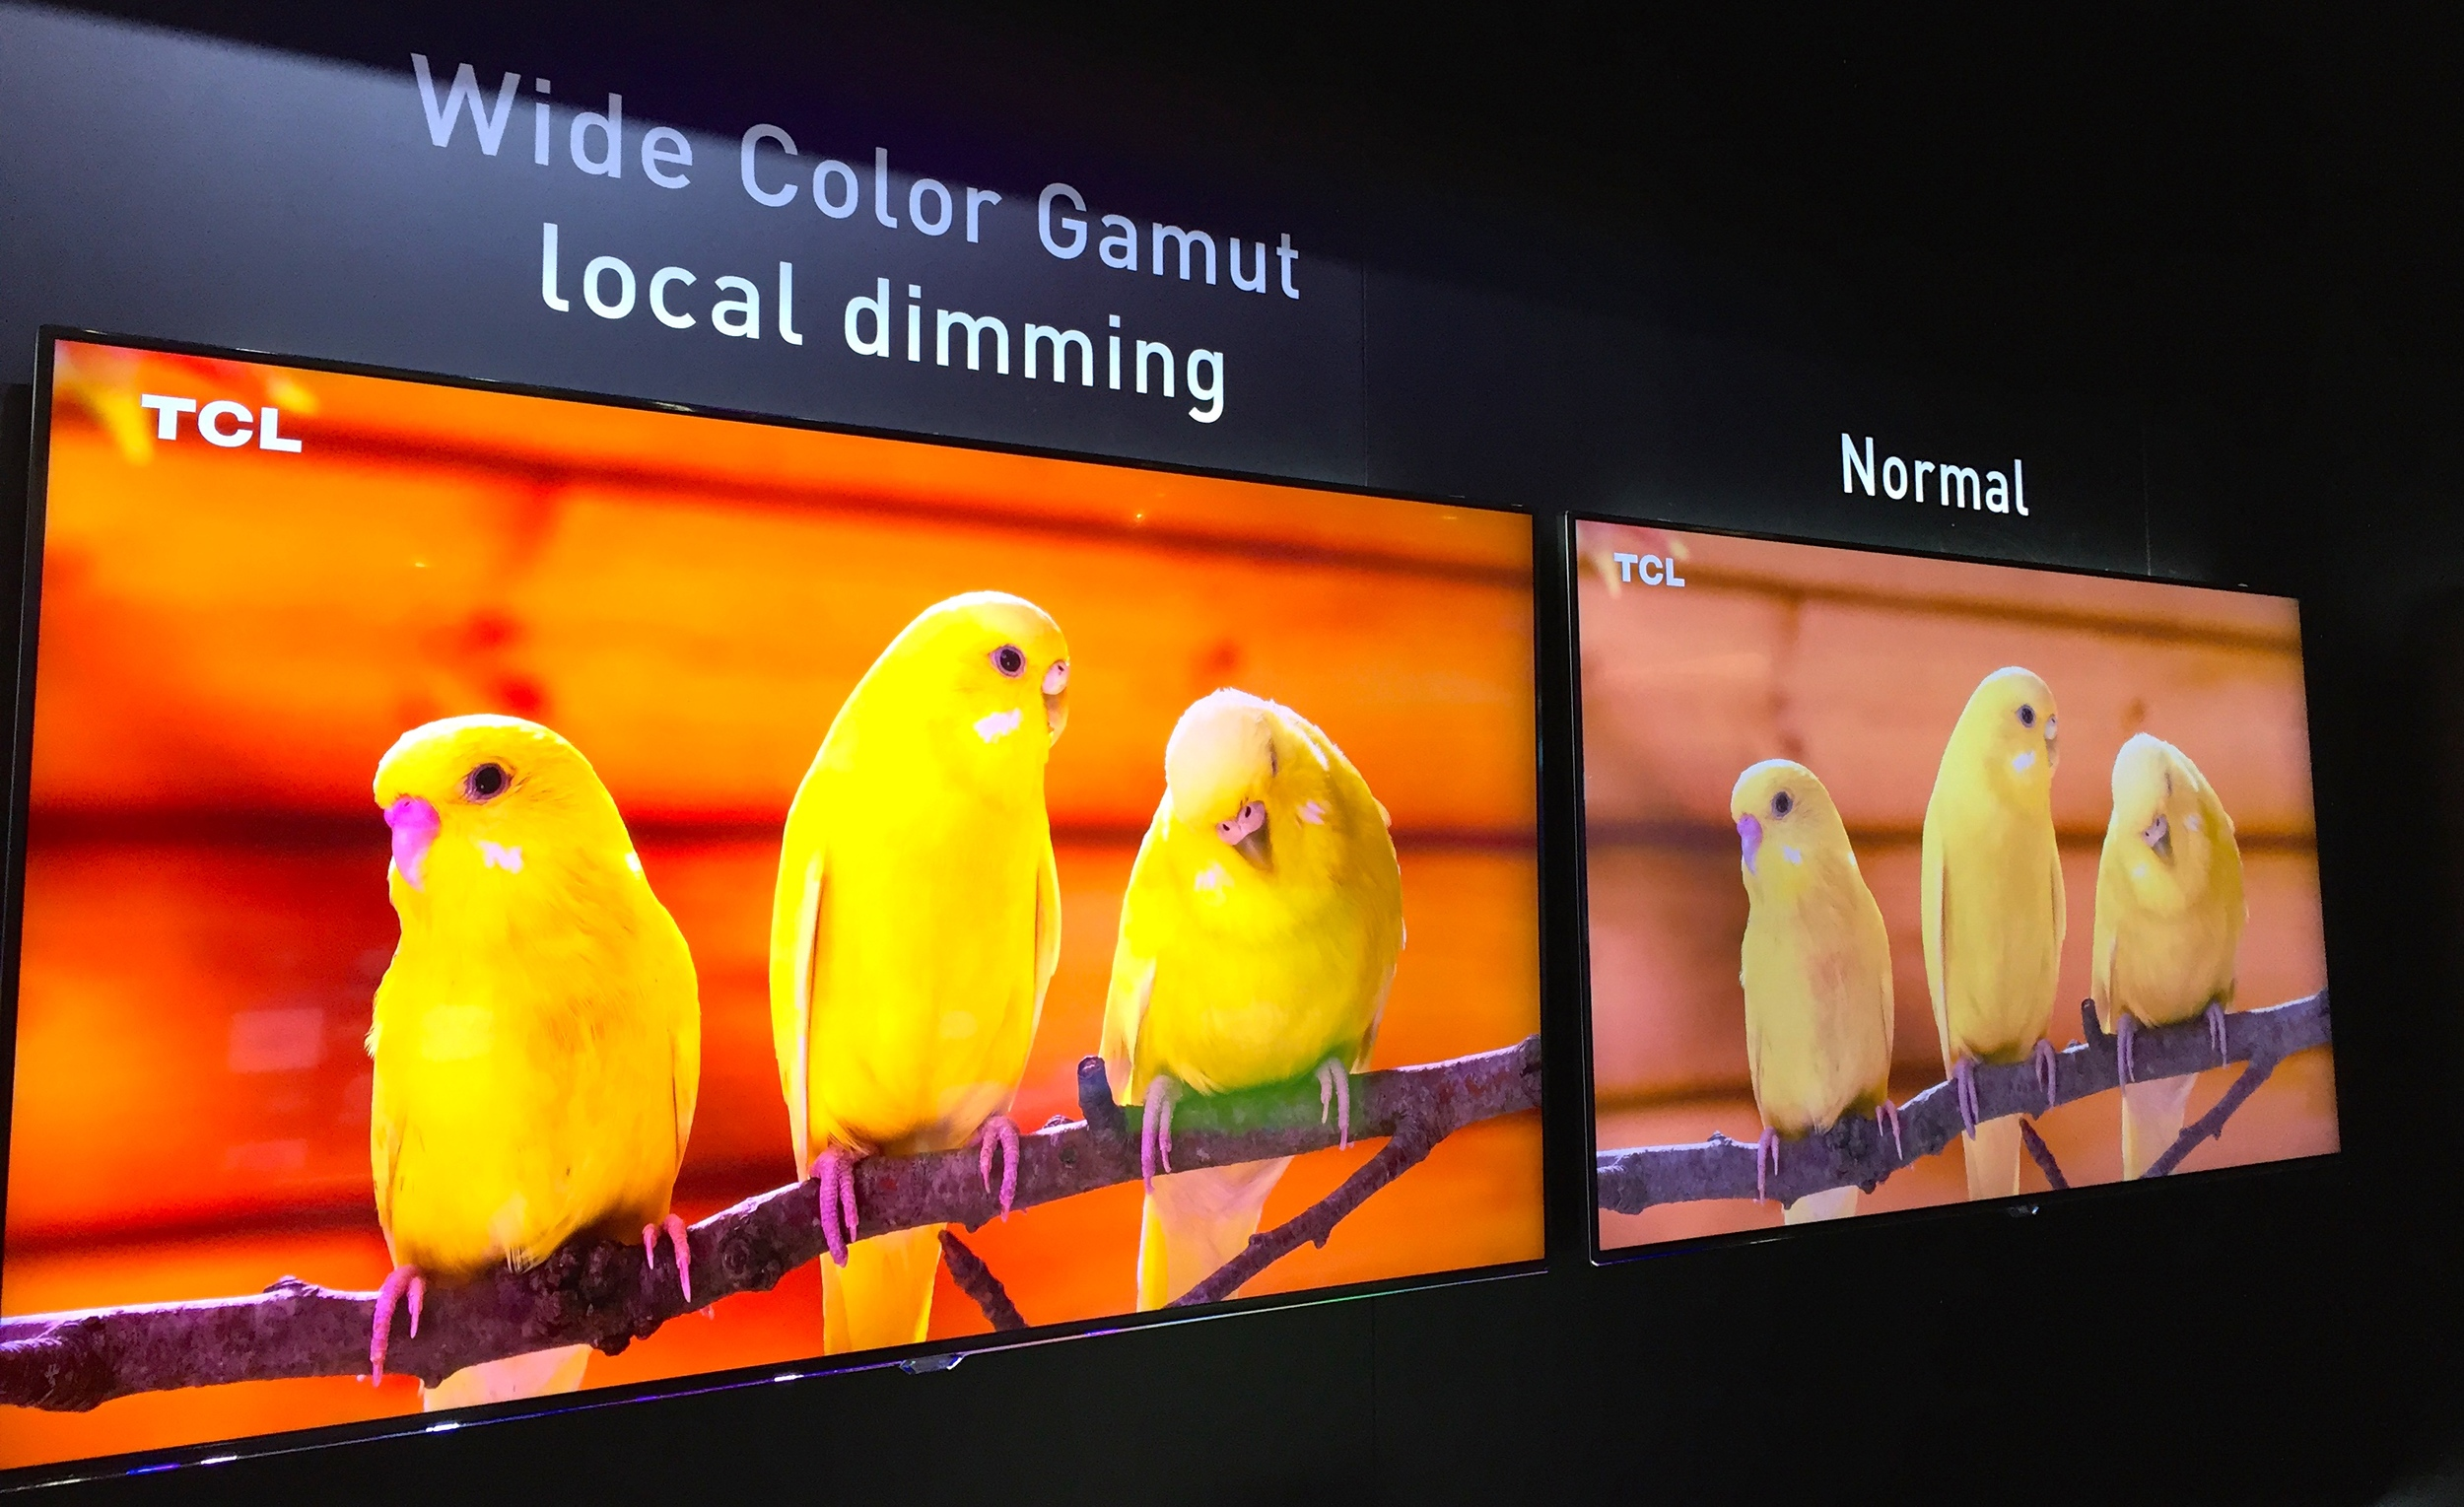 TCL showed off a beautiful local dimming Wide Color Gamut UHD TV with Quantum Dottechnology from Nanosys and 3M at CES 2015. This set featured gorgeous color and high dynamic range for a lifelike image.